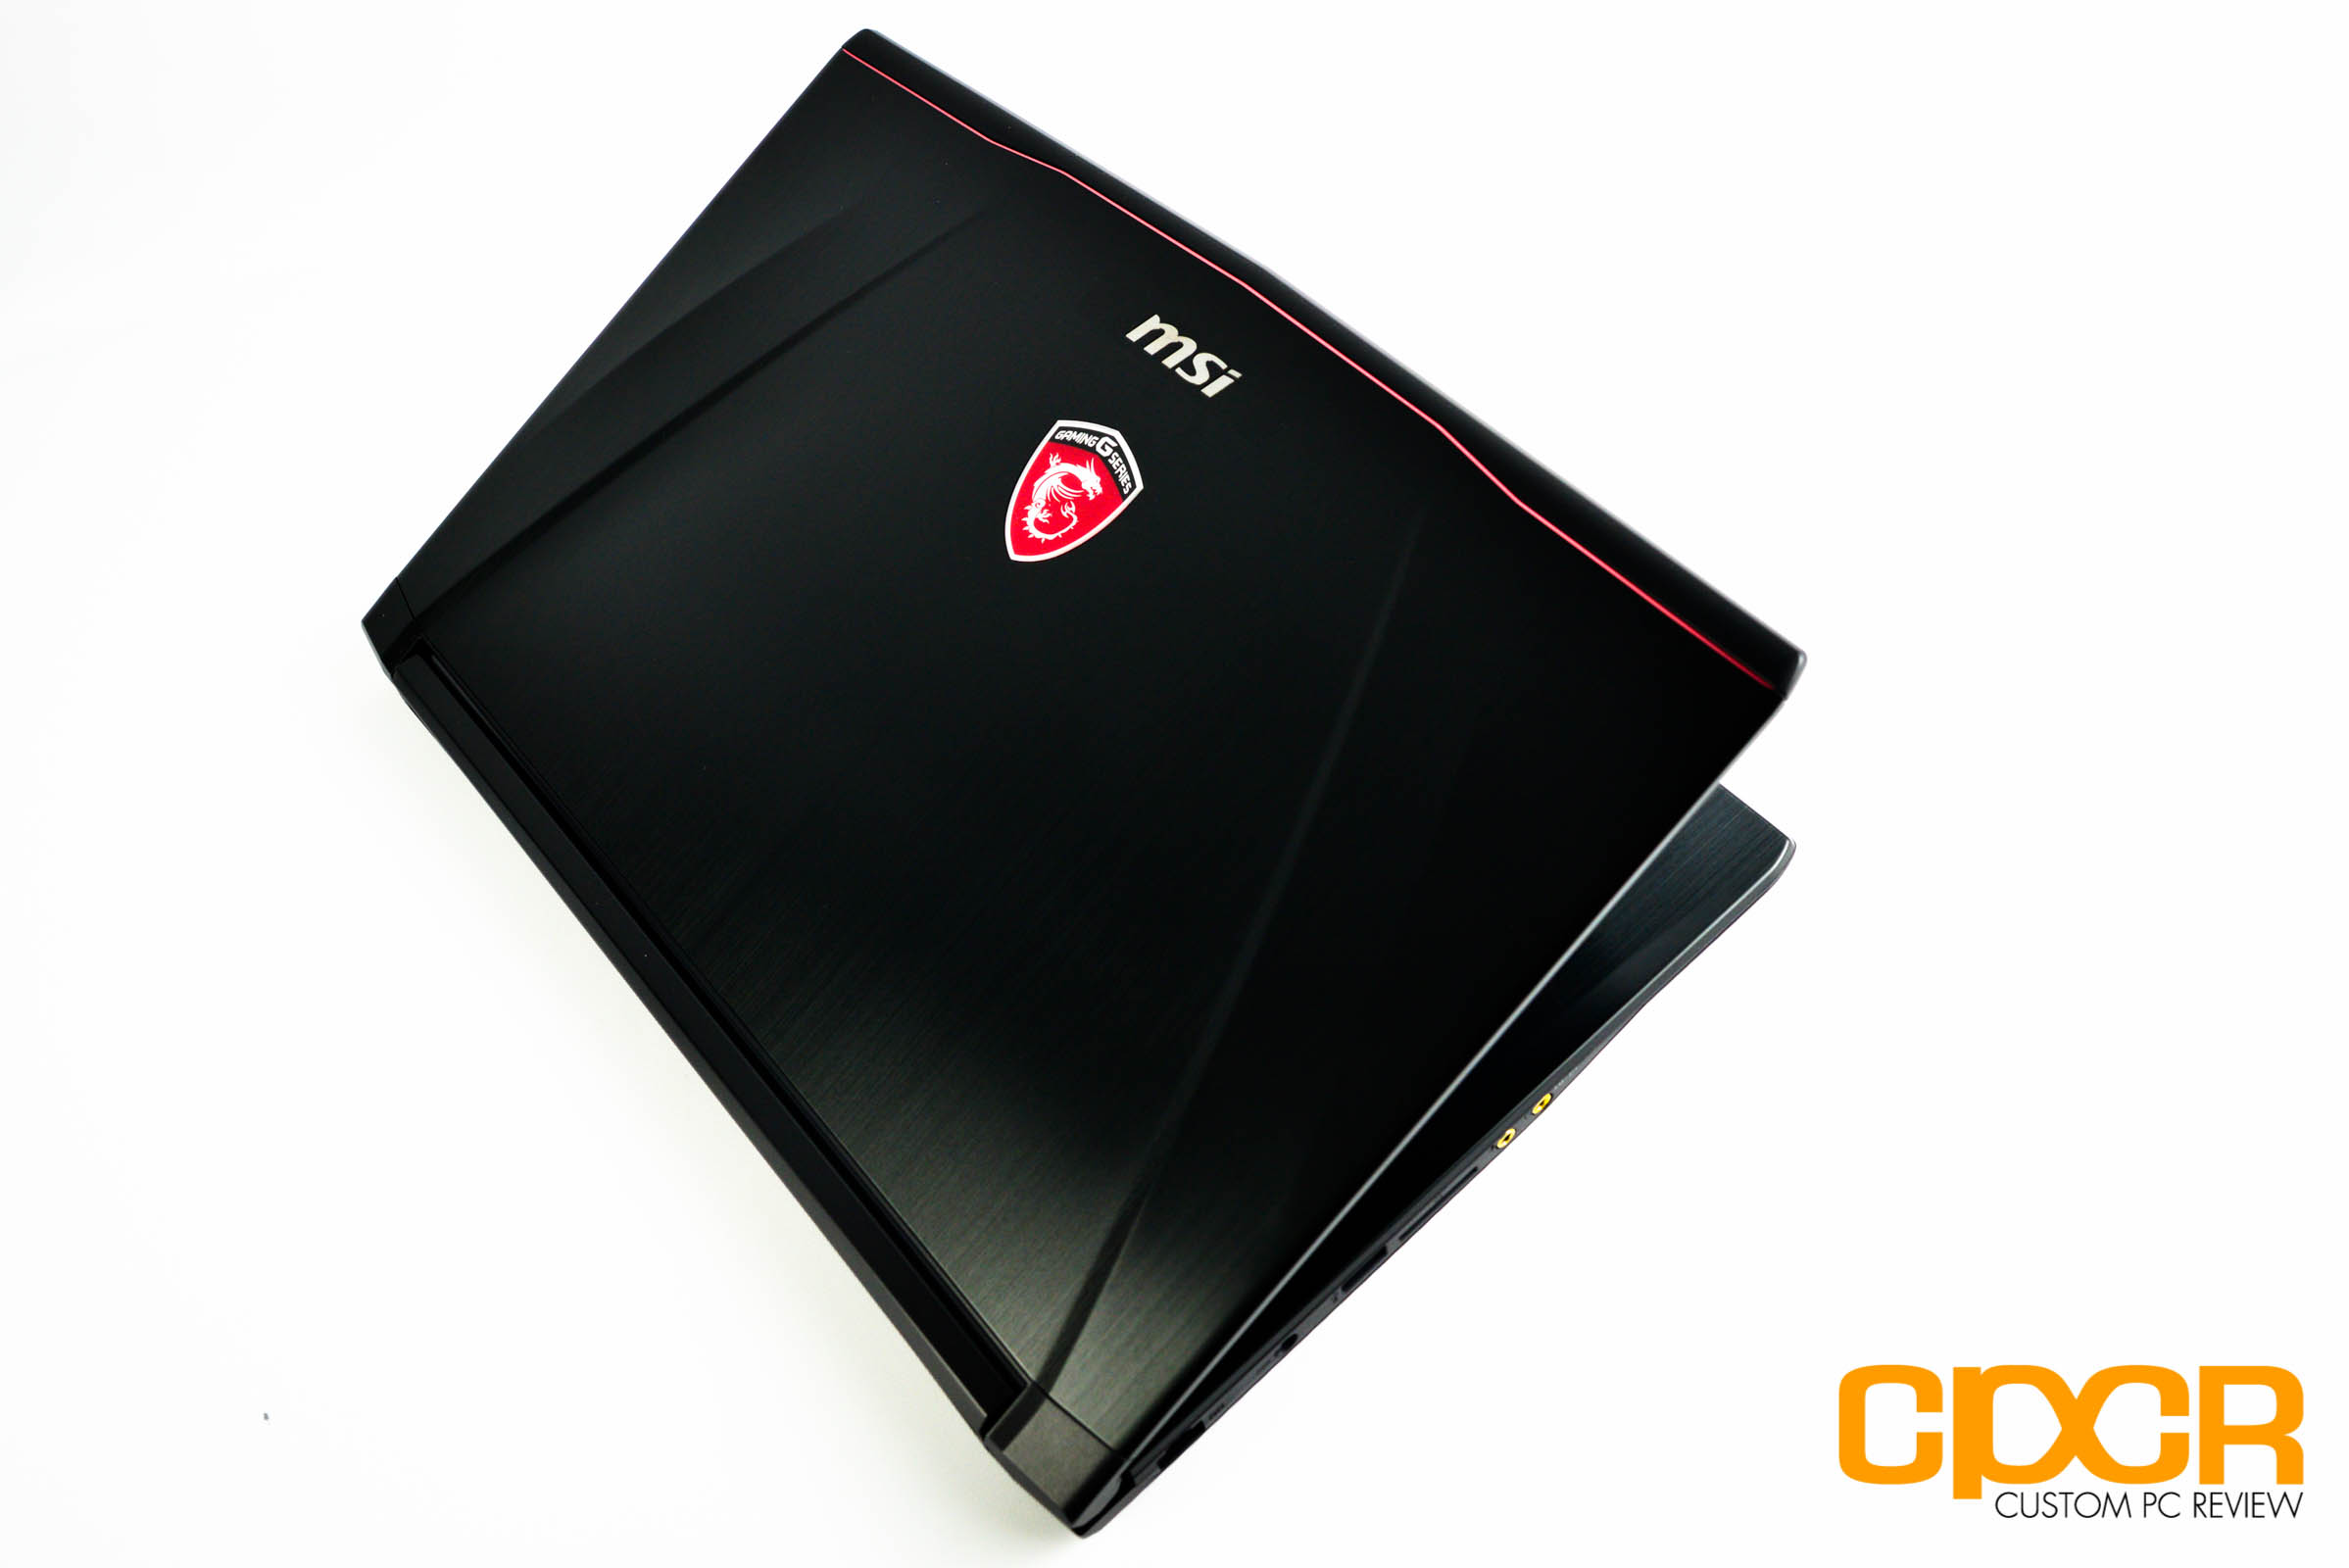 msi gs40 6qe phantom review 14 inch gaming laptop custom pc review. Black Bedroom Furniture Sets. Home Design Ideas